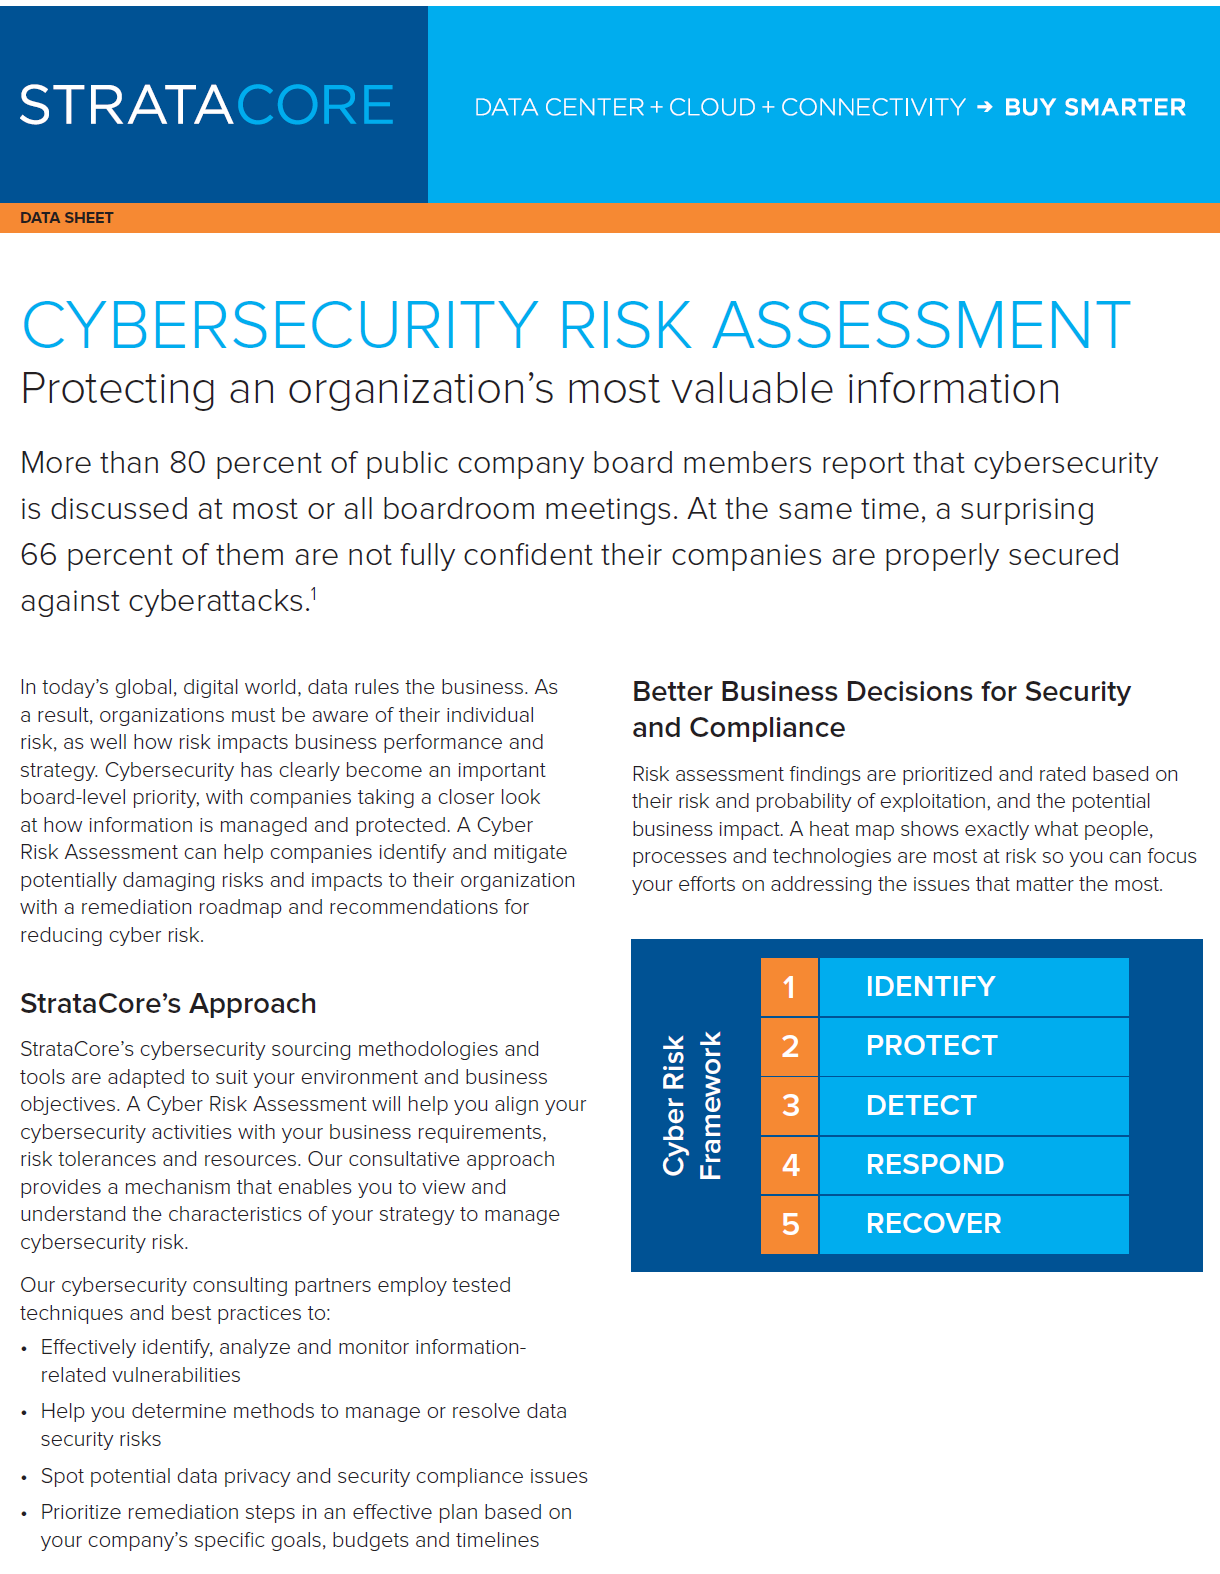 Cybersecurity risk assessment landing page image